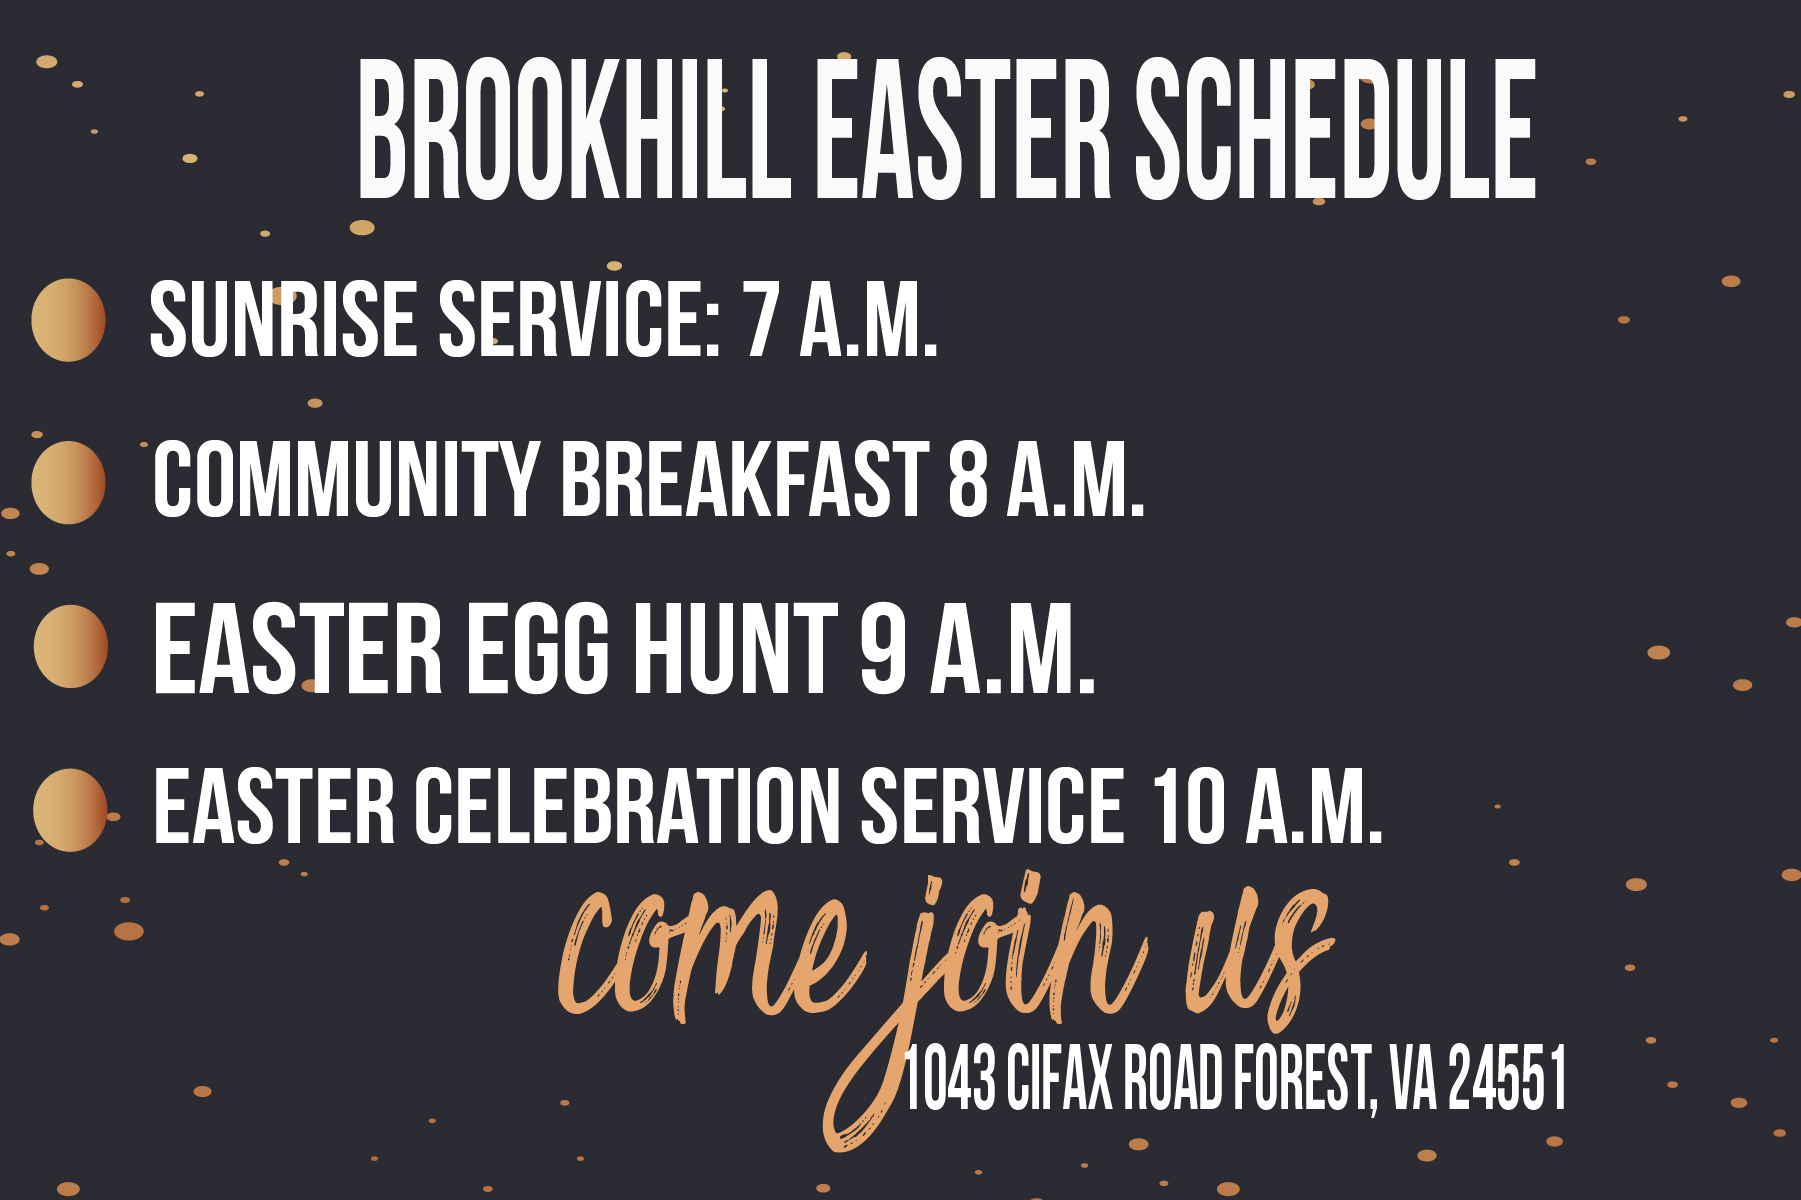 easter invite card 4x6-02.jpg